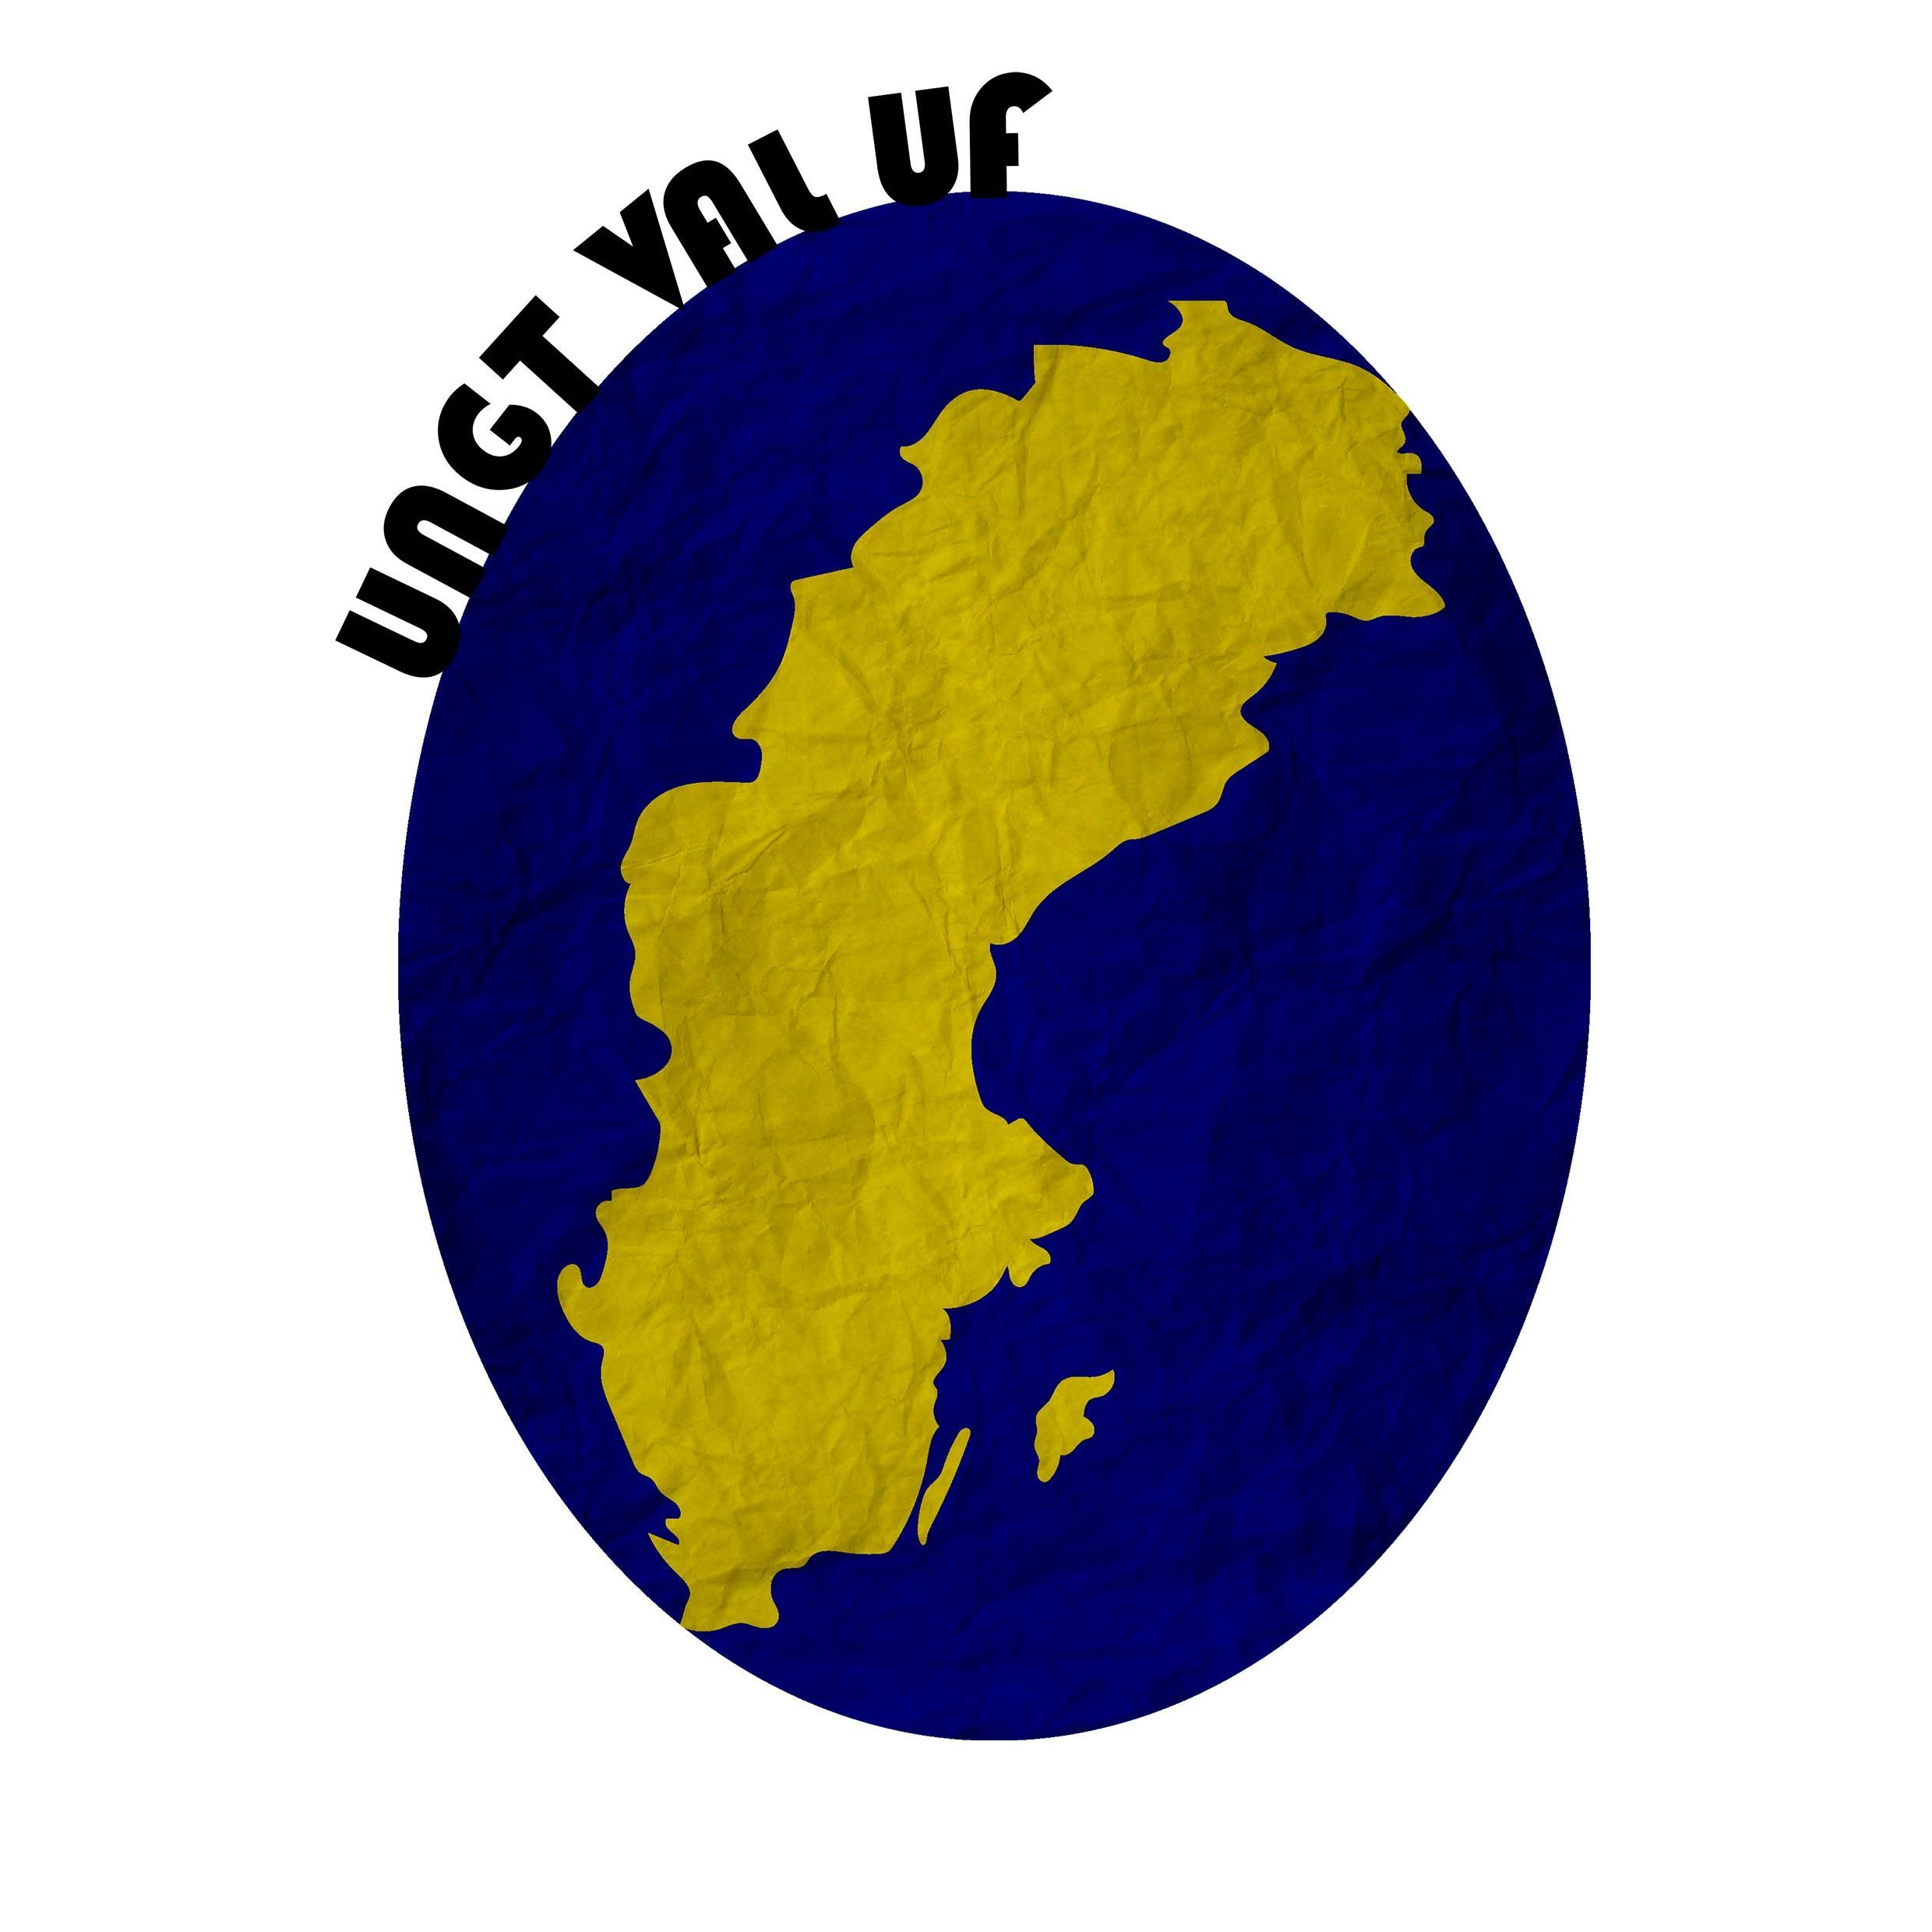 Ungt Val #2 - Jessika Roswall, M